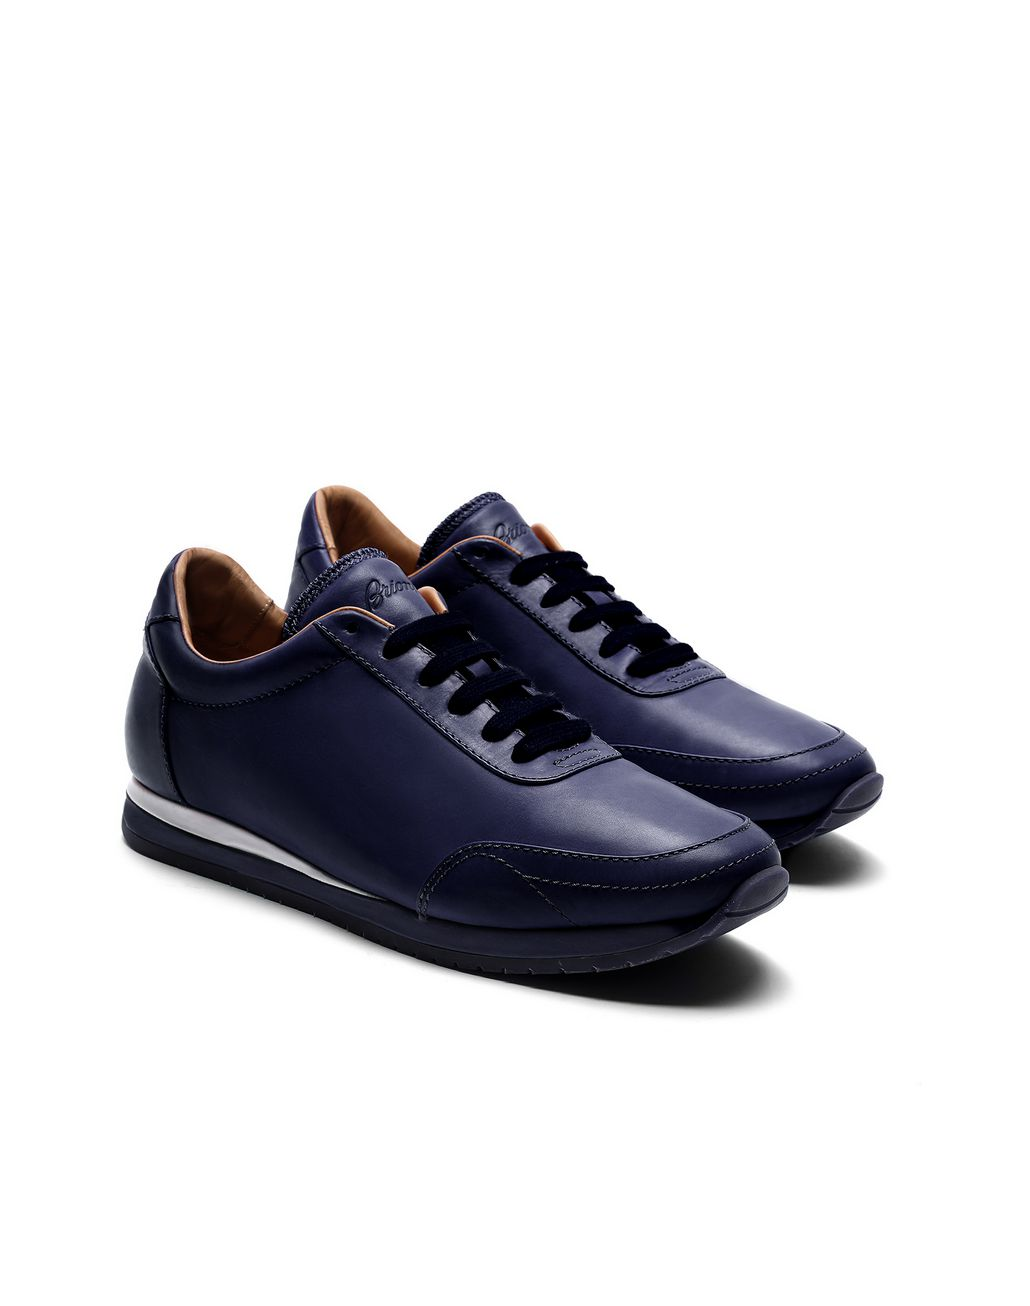 BRIONI Navy Blue and White Runner Sneakers Sneakers Man d